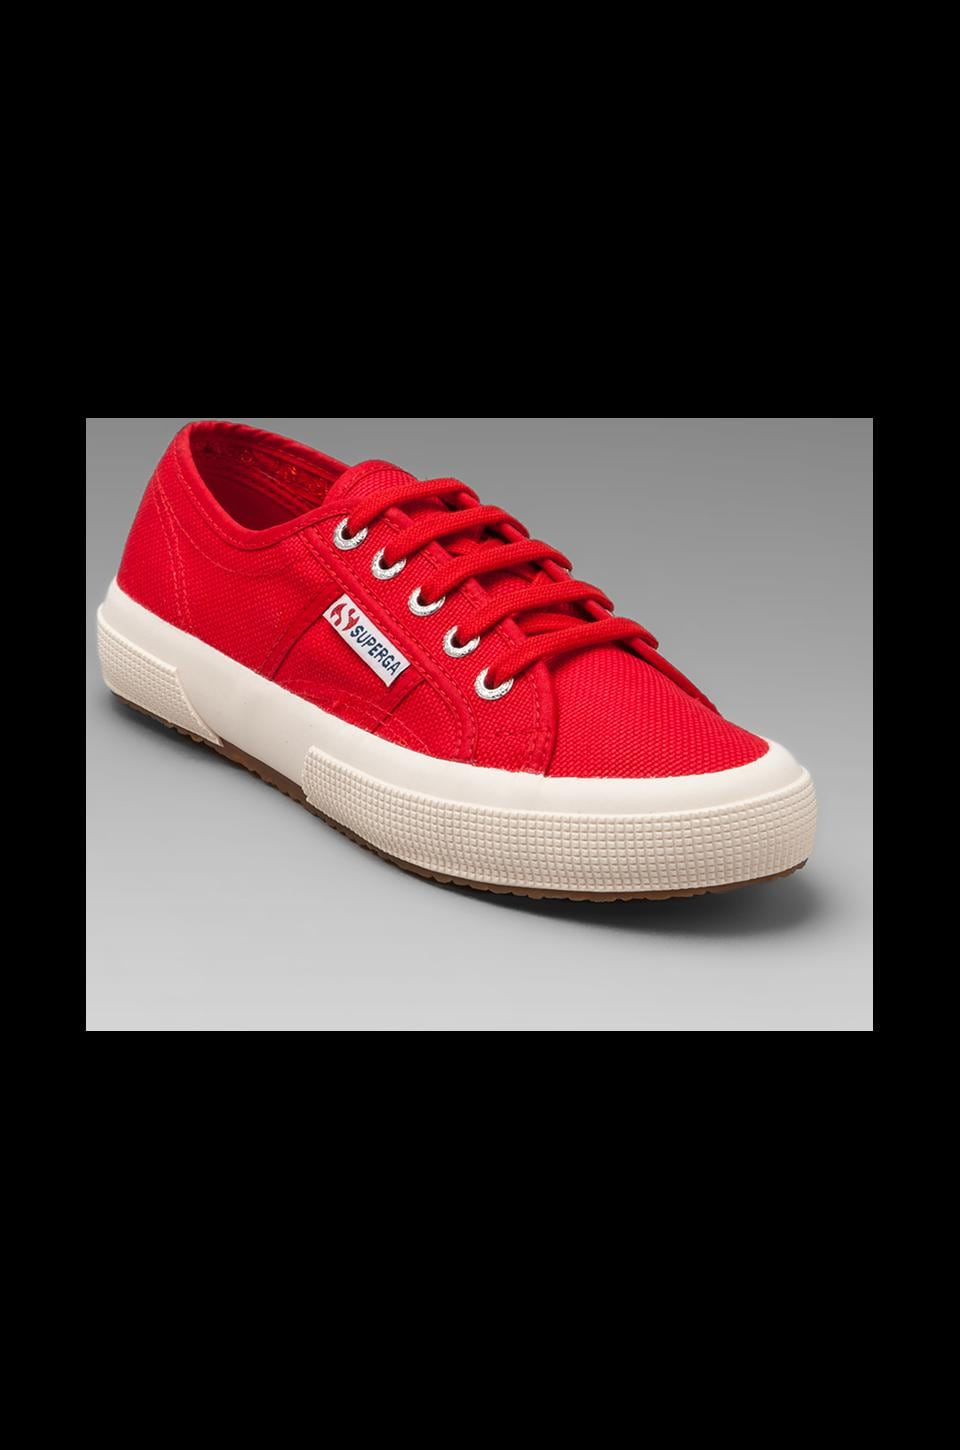 Superga 2750 Cotu Classic Sneaker in Red